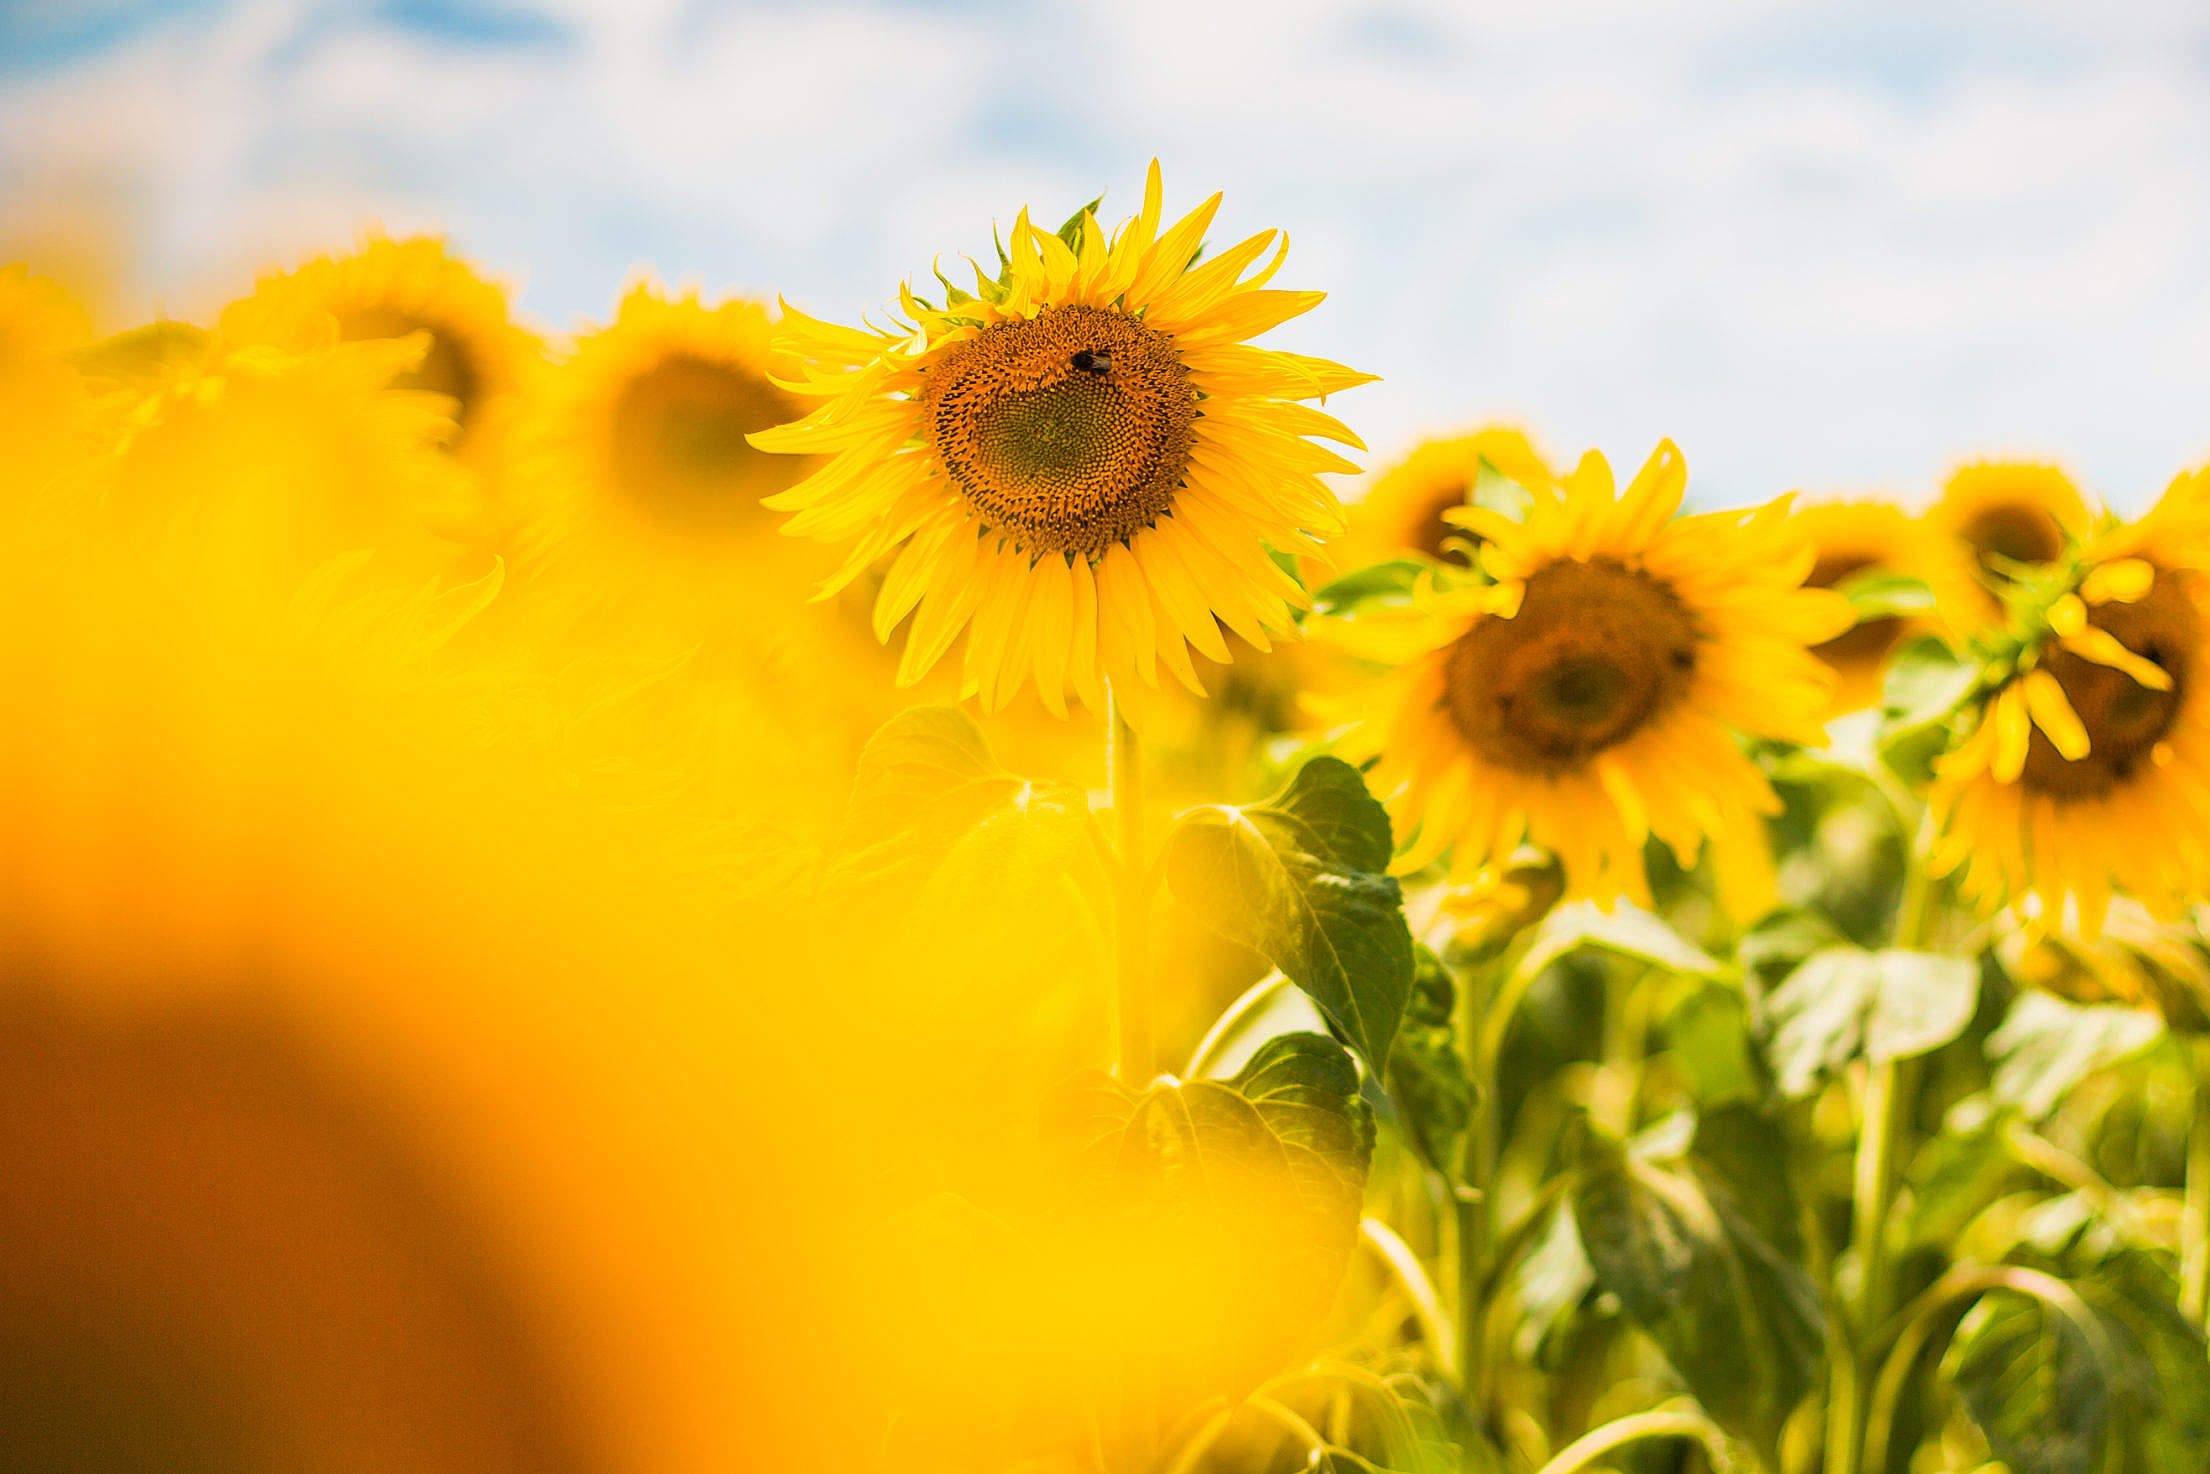 Another Colorful Sunflower Field Free Stock Photo Download | picjumbo